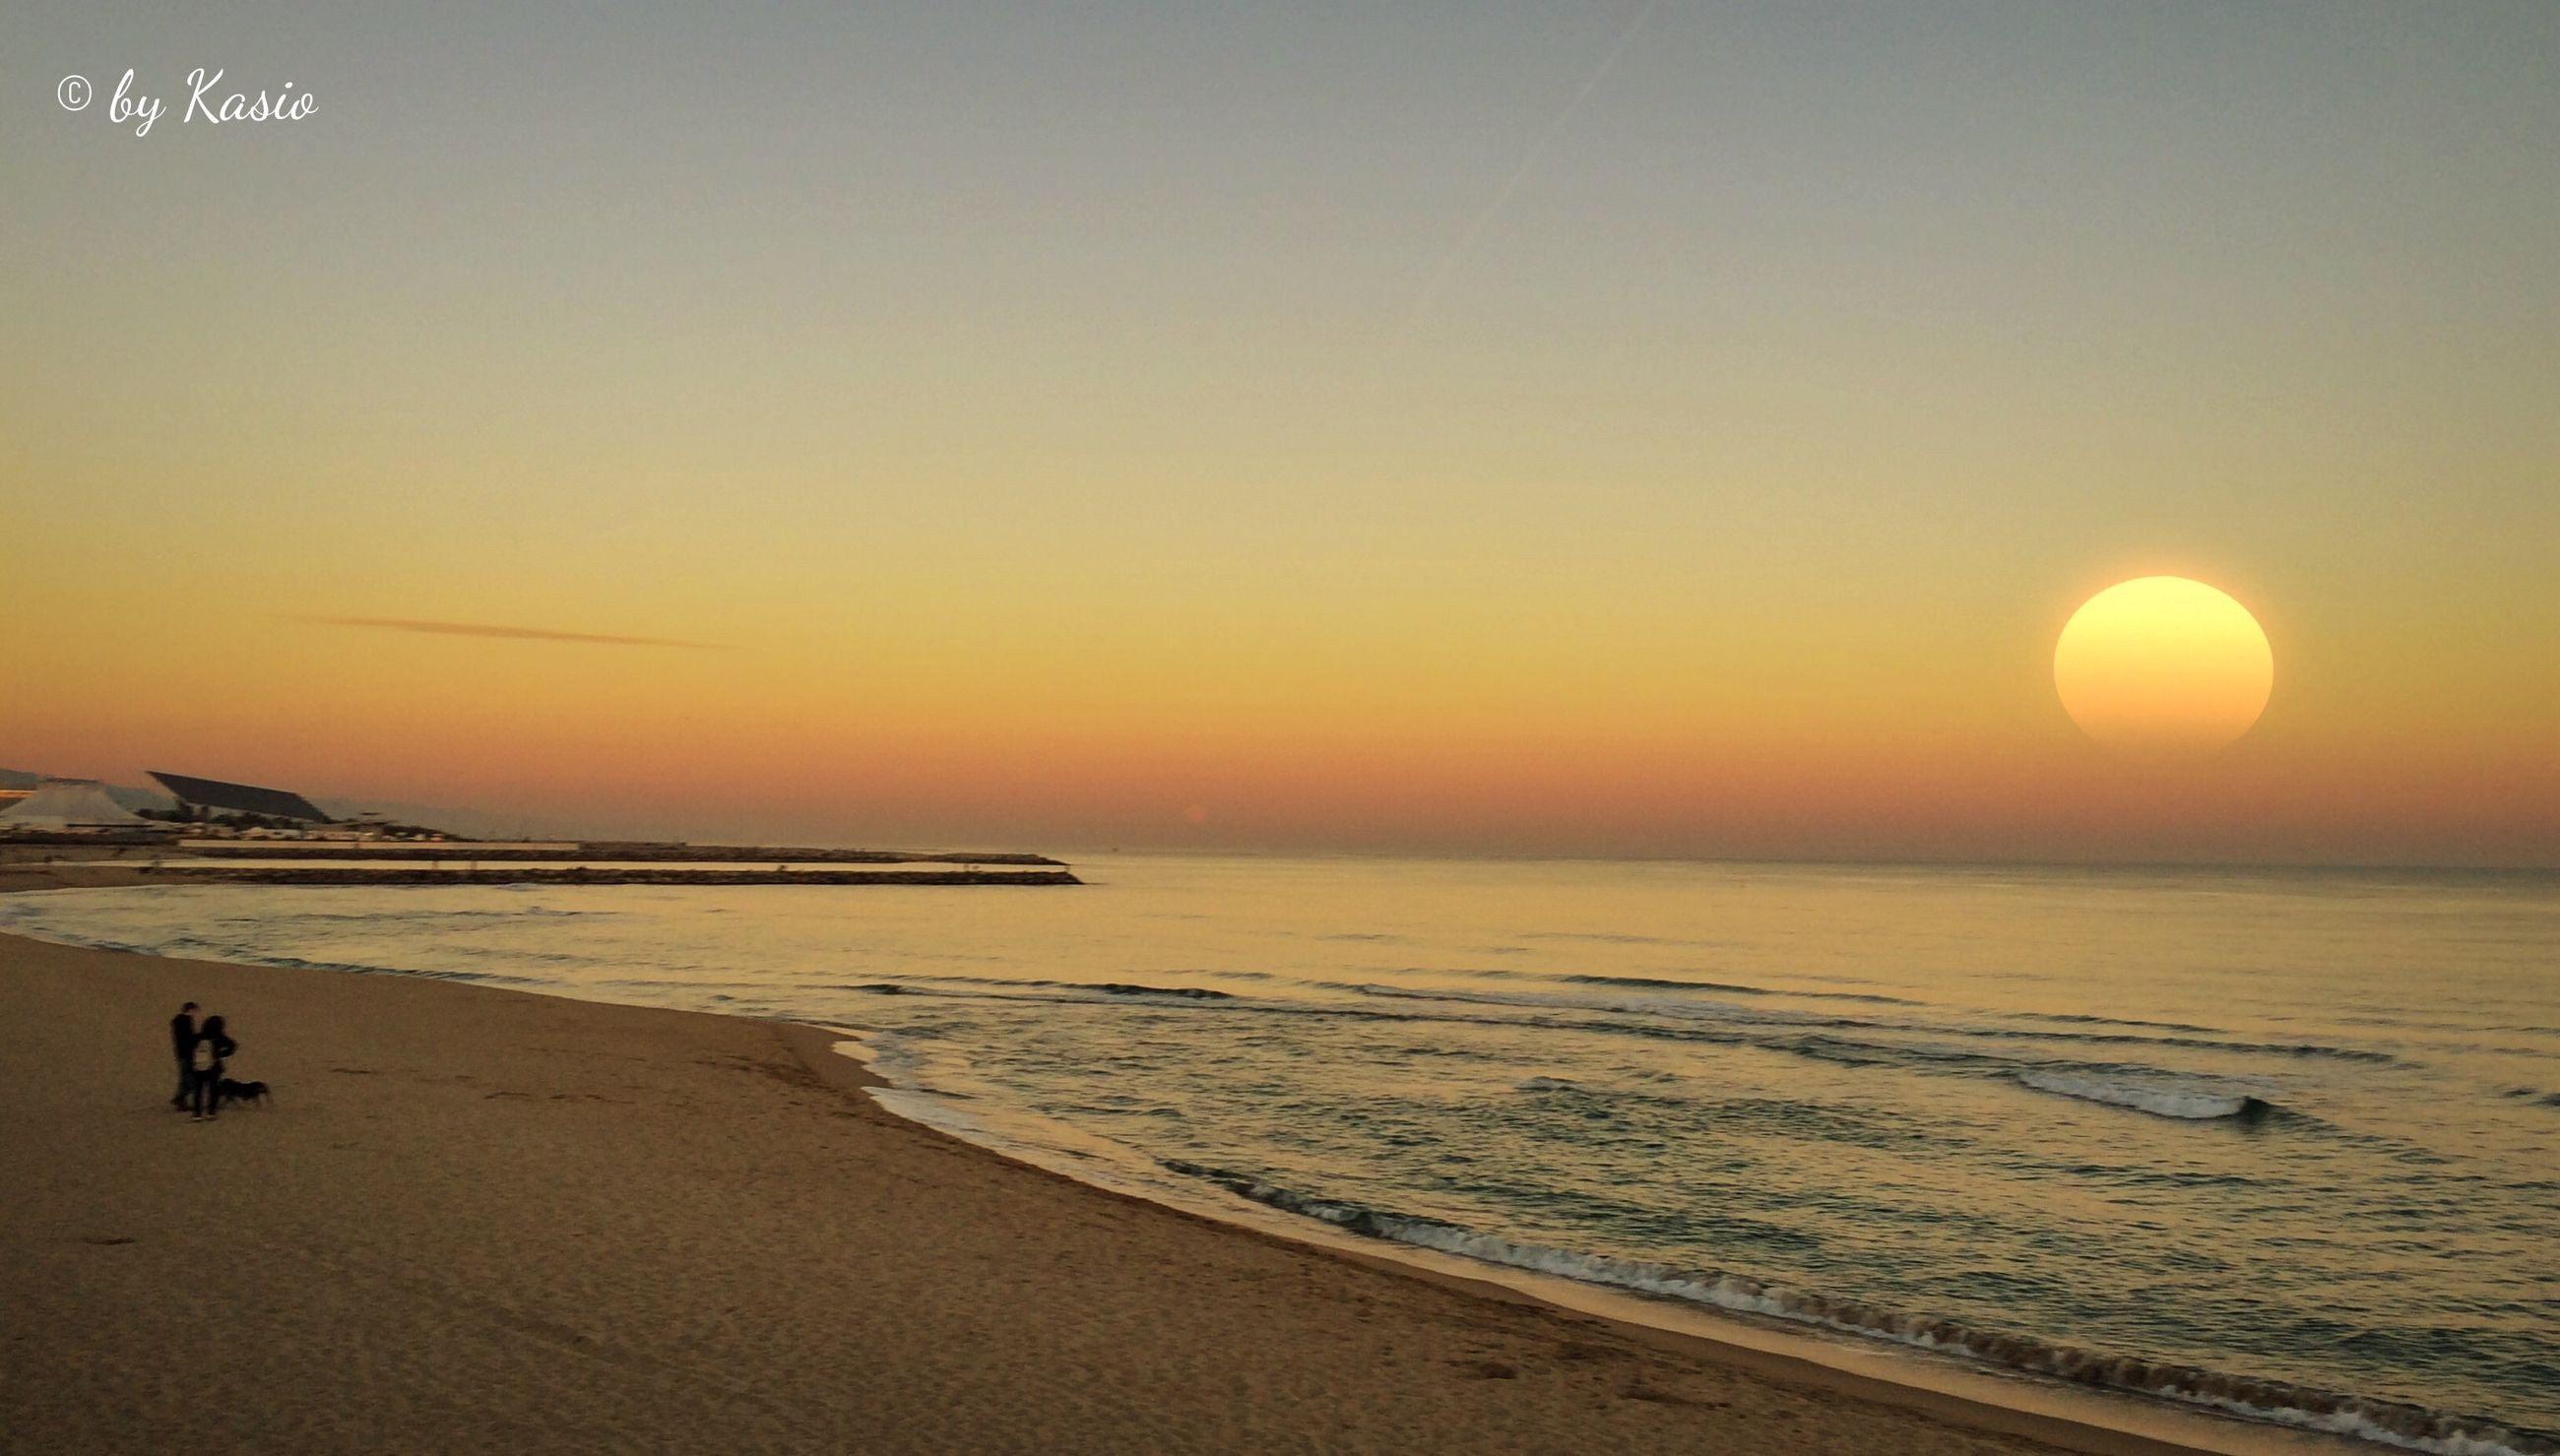 sea, horizon over water, beach, sunset, water, shore, scenics, tranquil scene, beauty in nature, tranquility, orange color, sand, idyllic, nature, sky, wave, sun, coastline, incidental people, outdoors